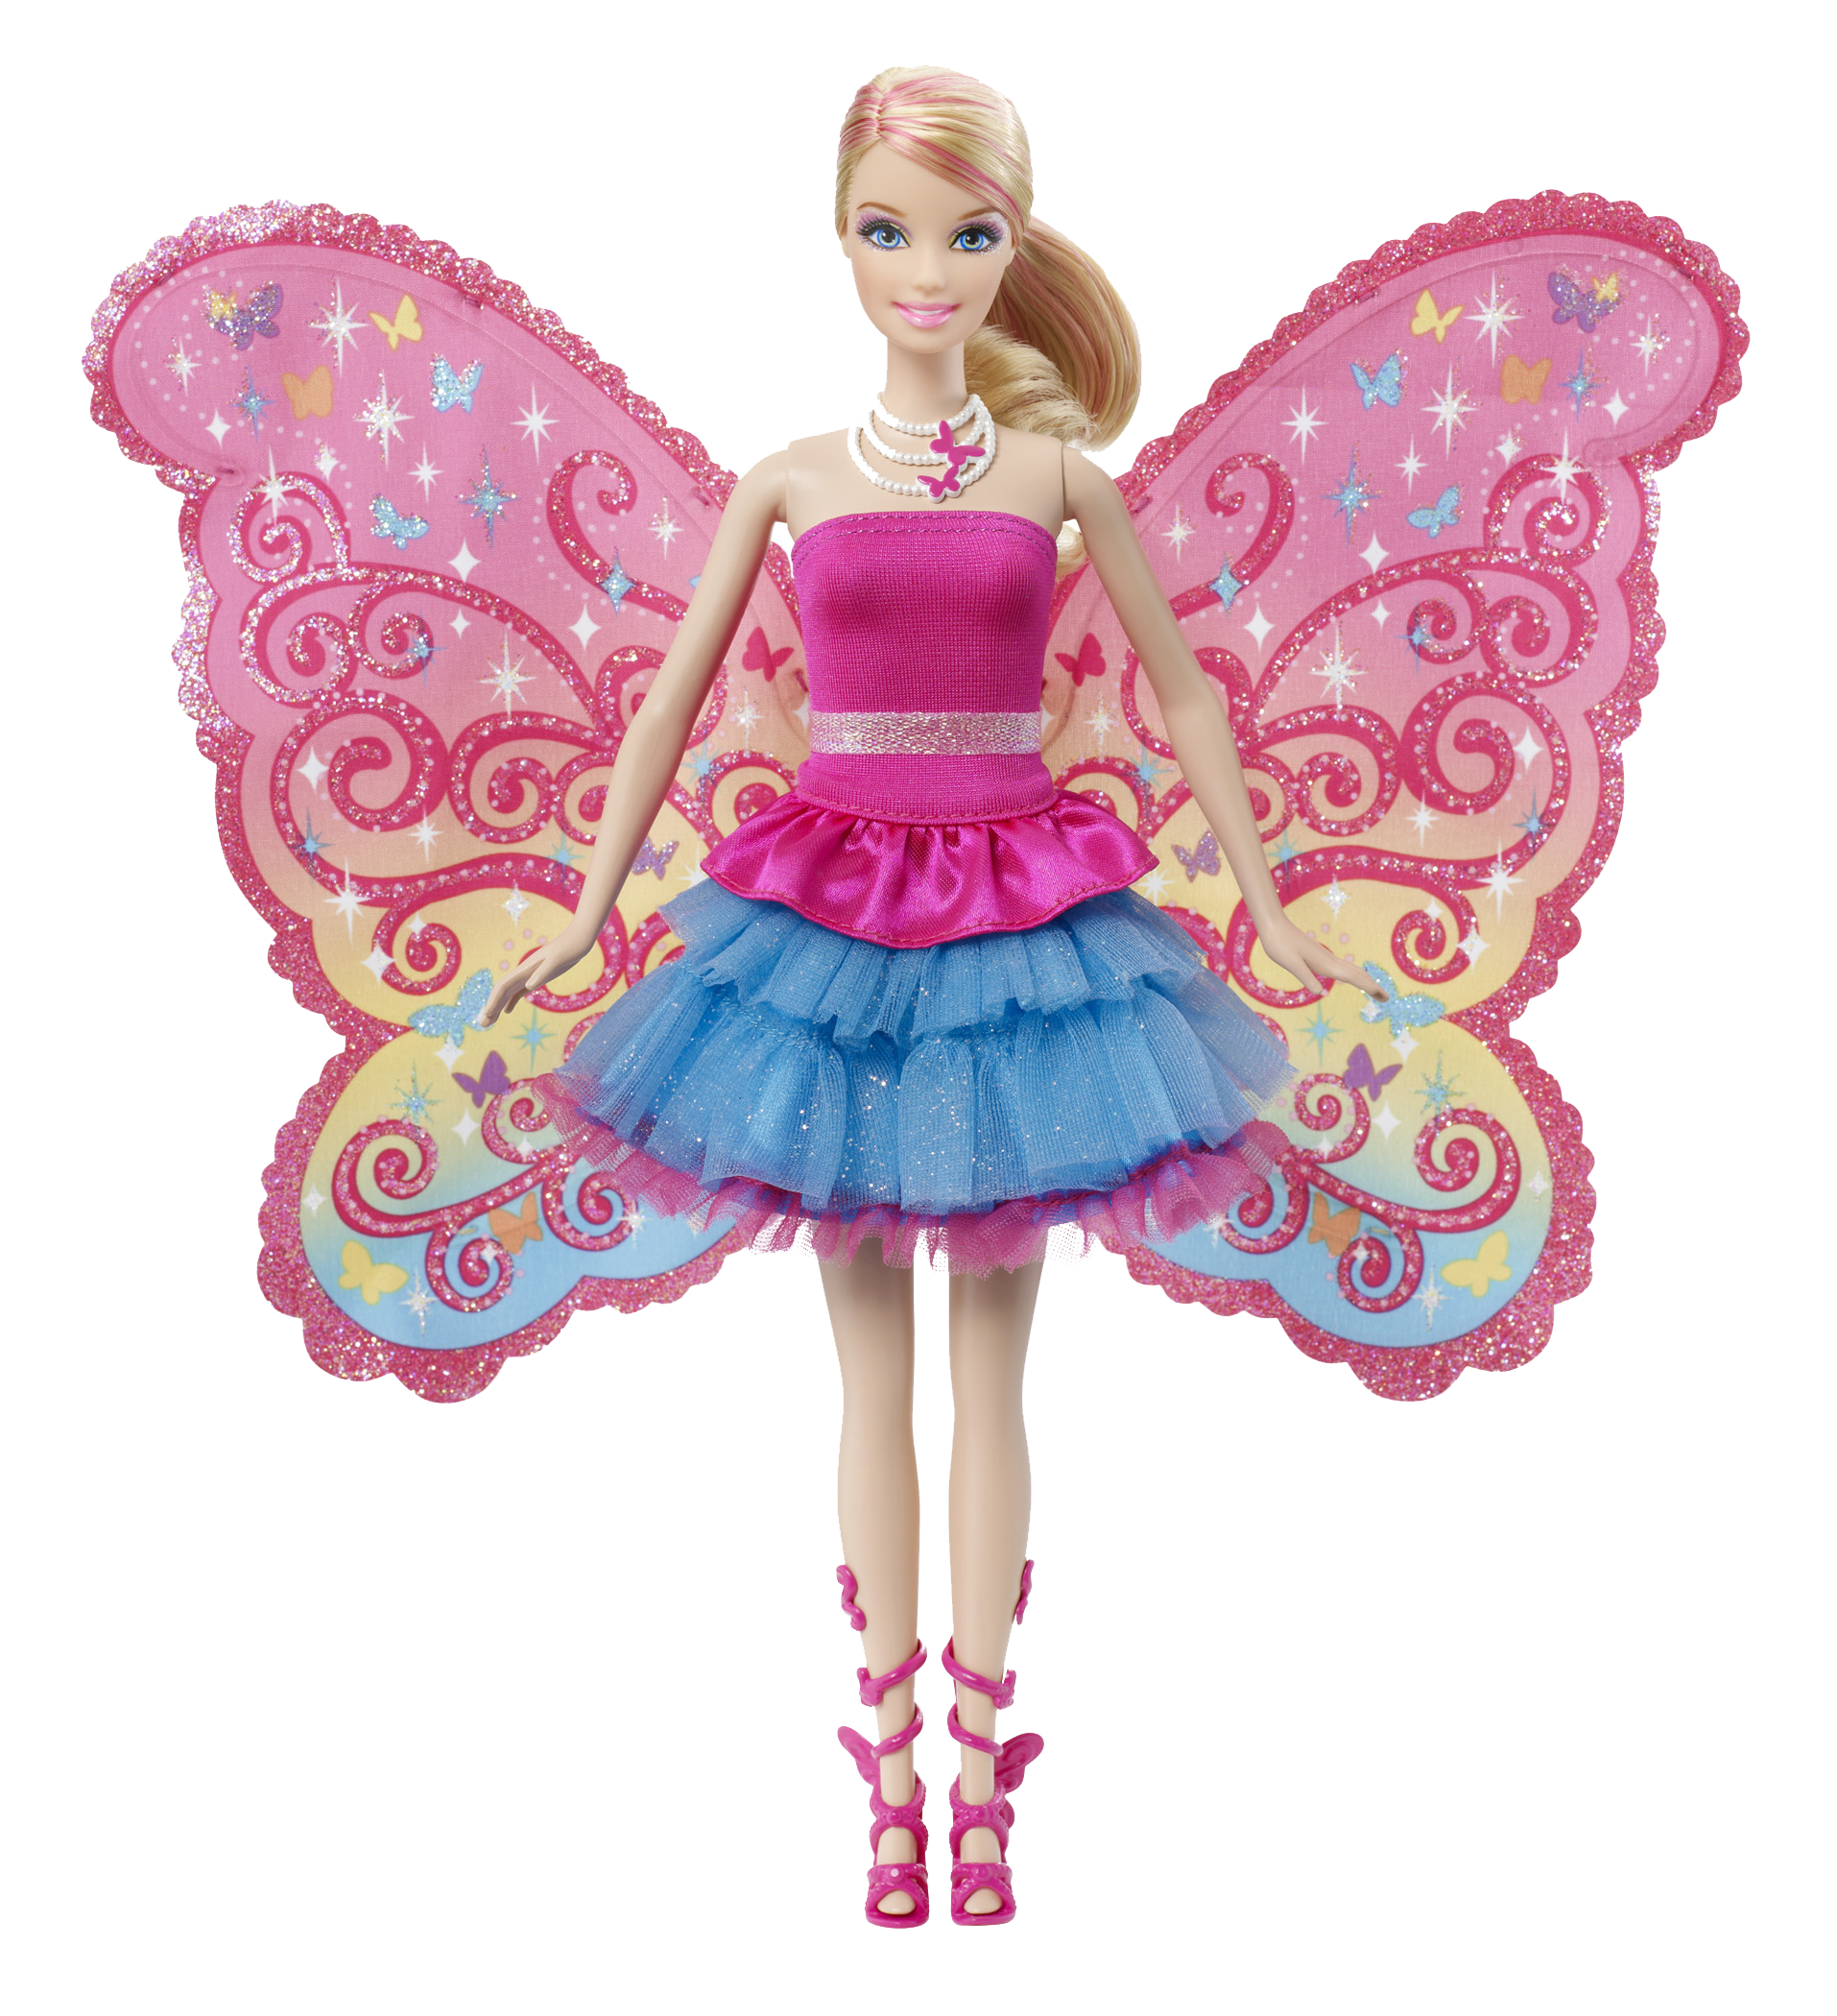 Barbie Doll Png Transparent Photo 3191